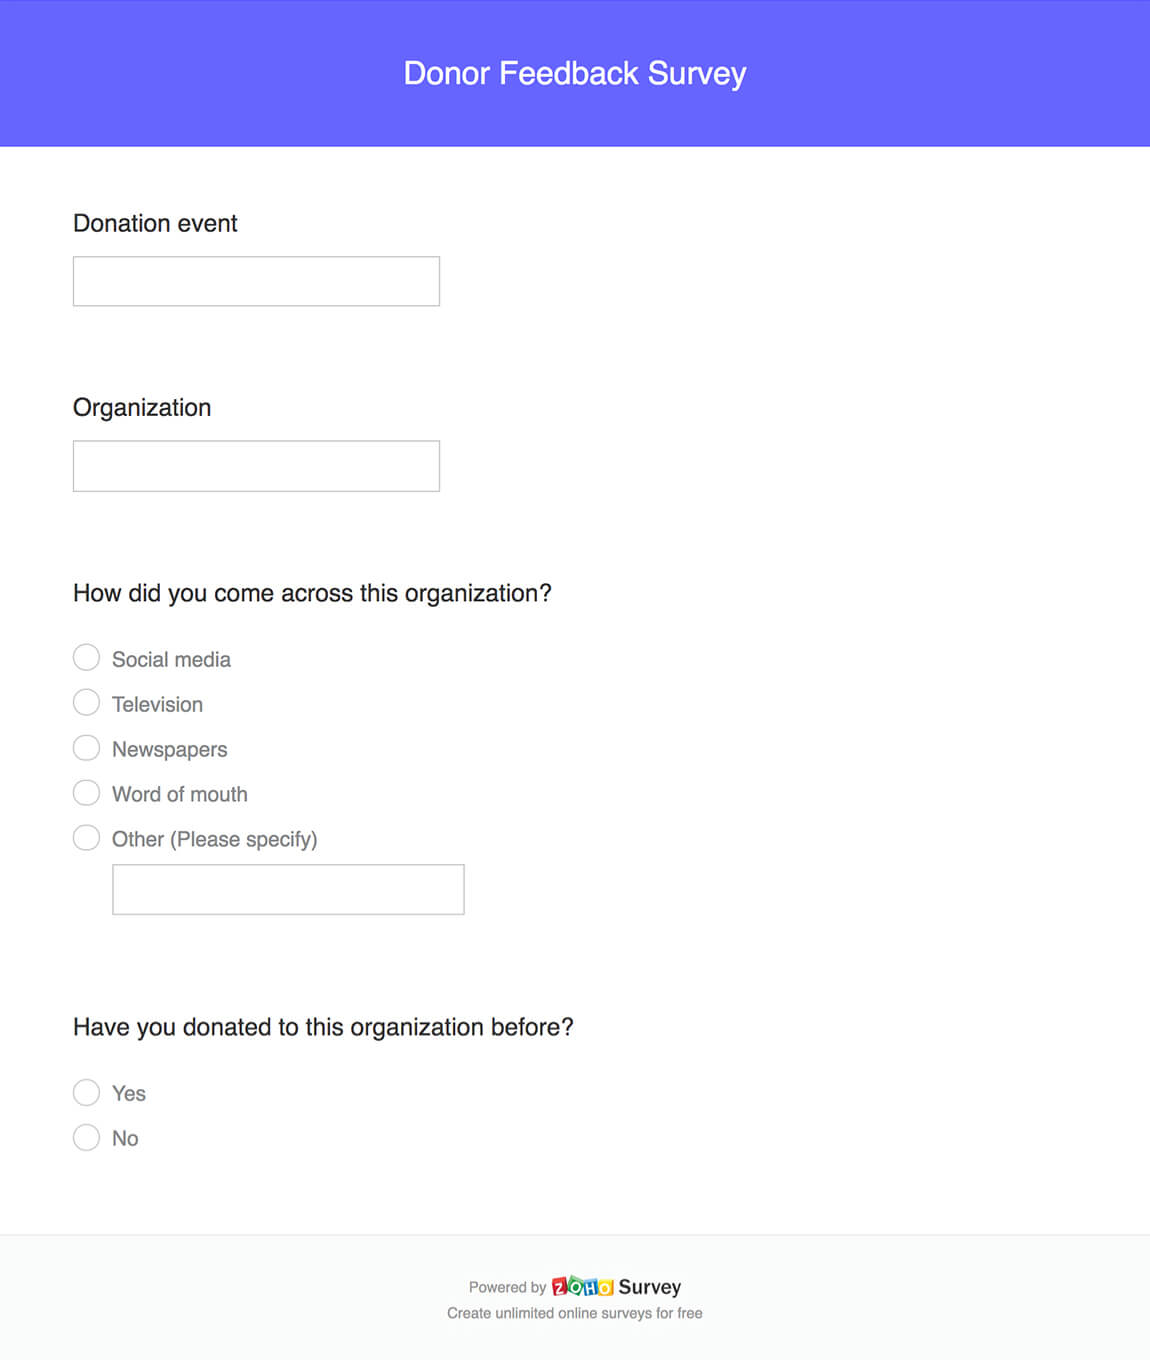 Donor feedback survey questionnaire template